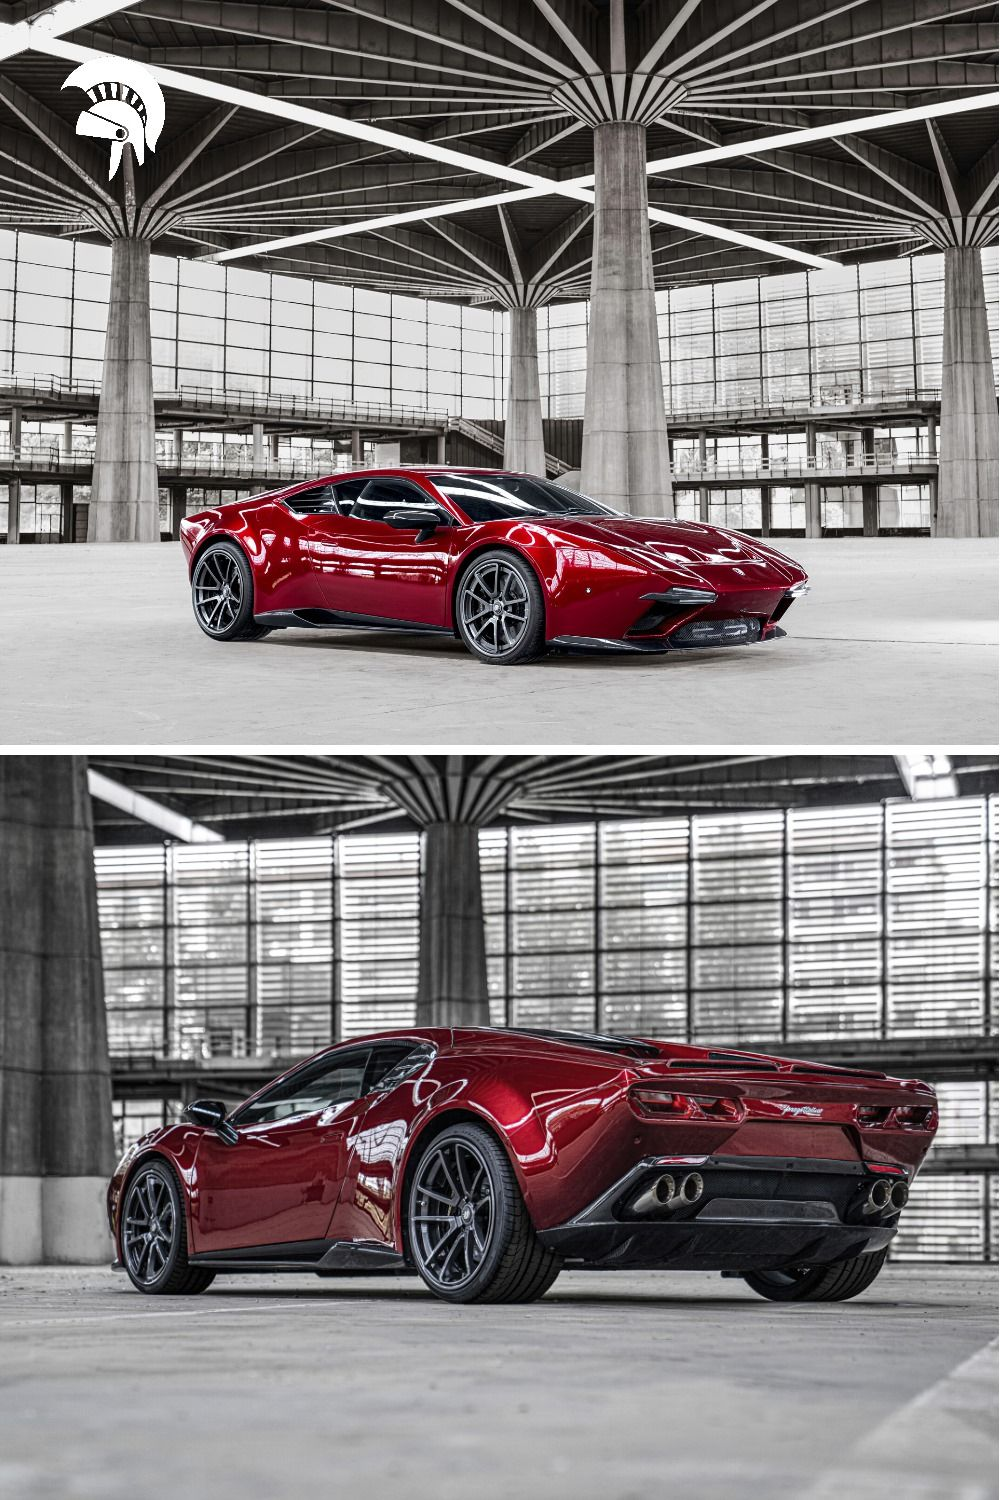 Ares Progettouno Aresdesign Arespanther Panther Progettouno Madeinitaly Coachbuilder Supercar In 2020 Coach Builders Car Sharing Panther